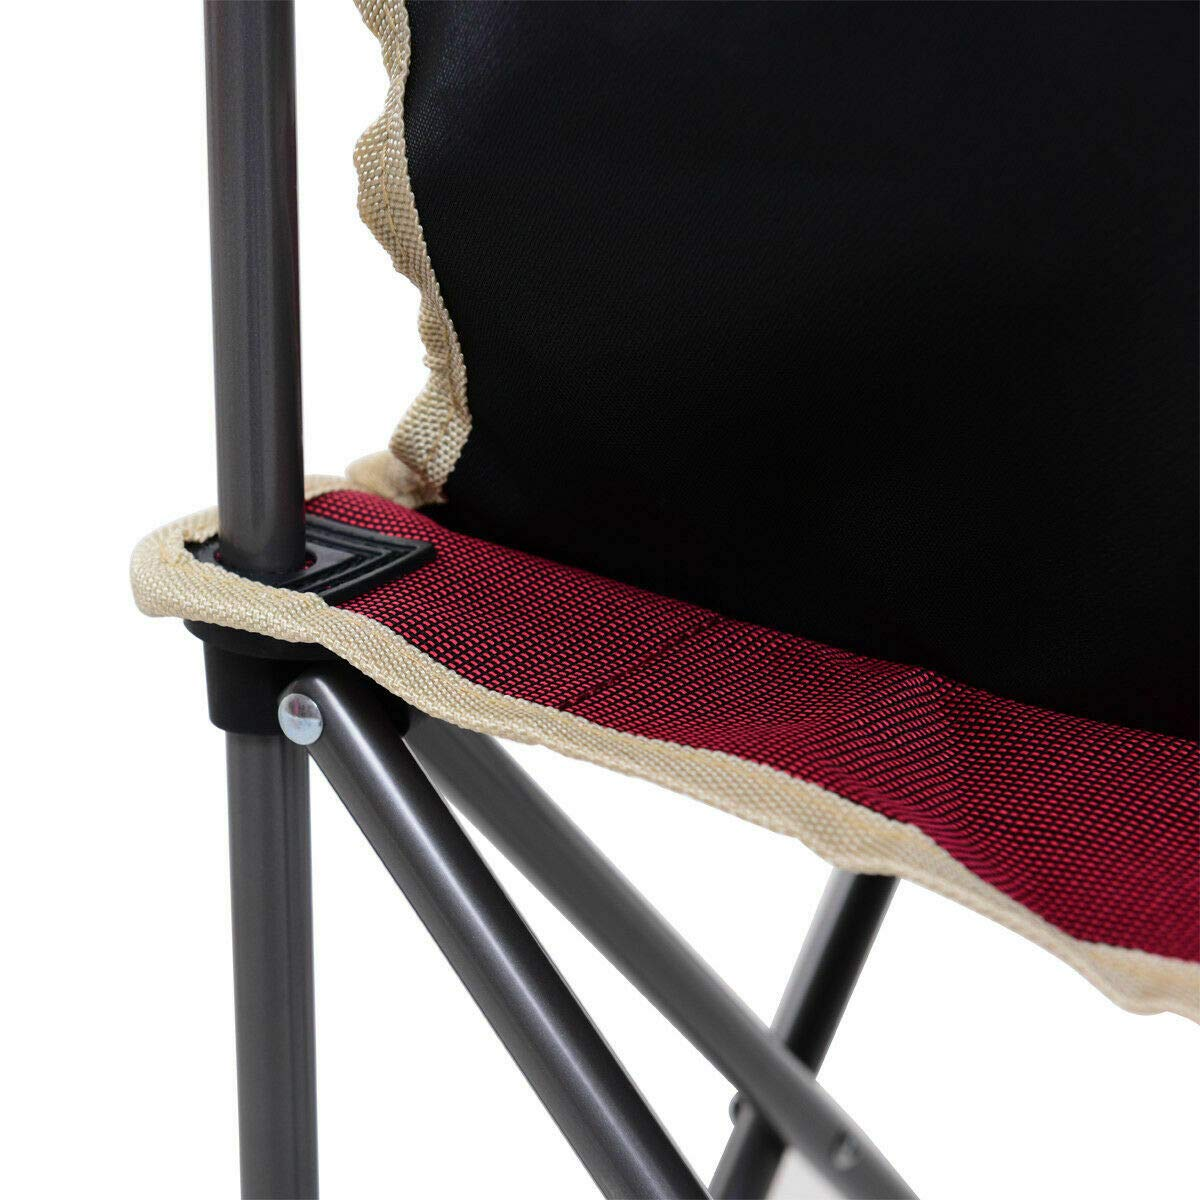 ANA Store Vacations Cookout Party Curl Stand Metal Iron Stell Frame Red Oxford Fabric Portable Folding Table Chairs Set Inside Outside Camp Beach Picnic with Carrying Bag by ANA Store (Image #7)